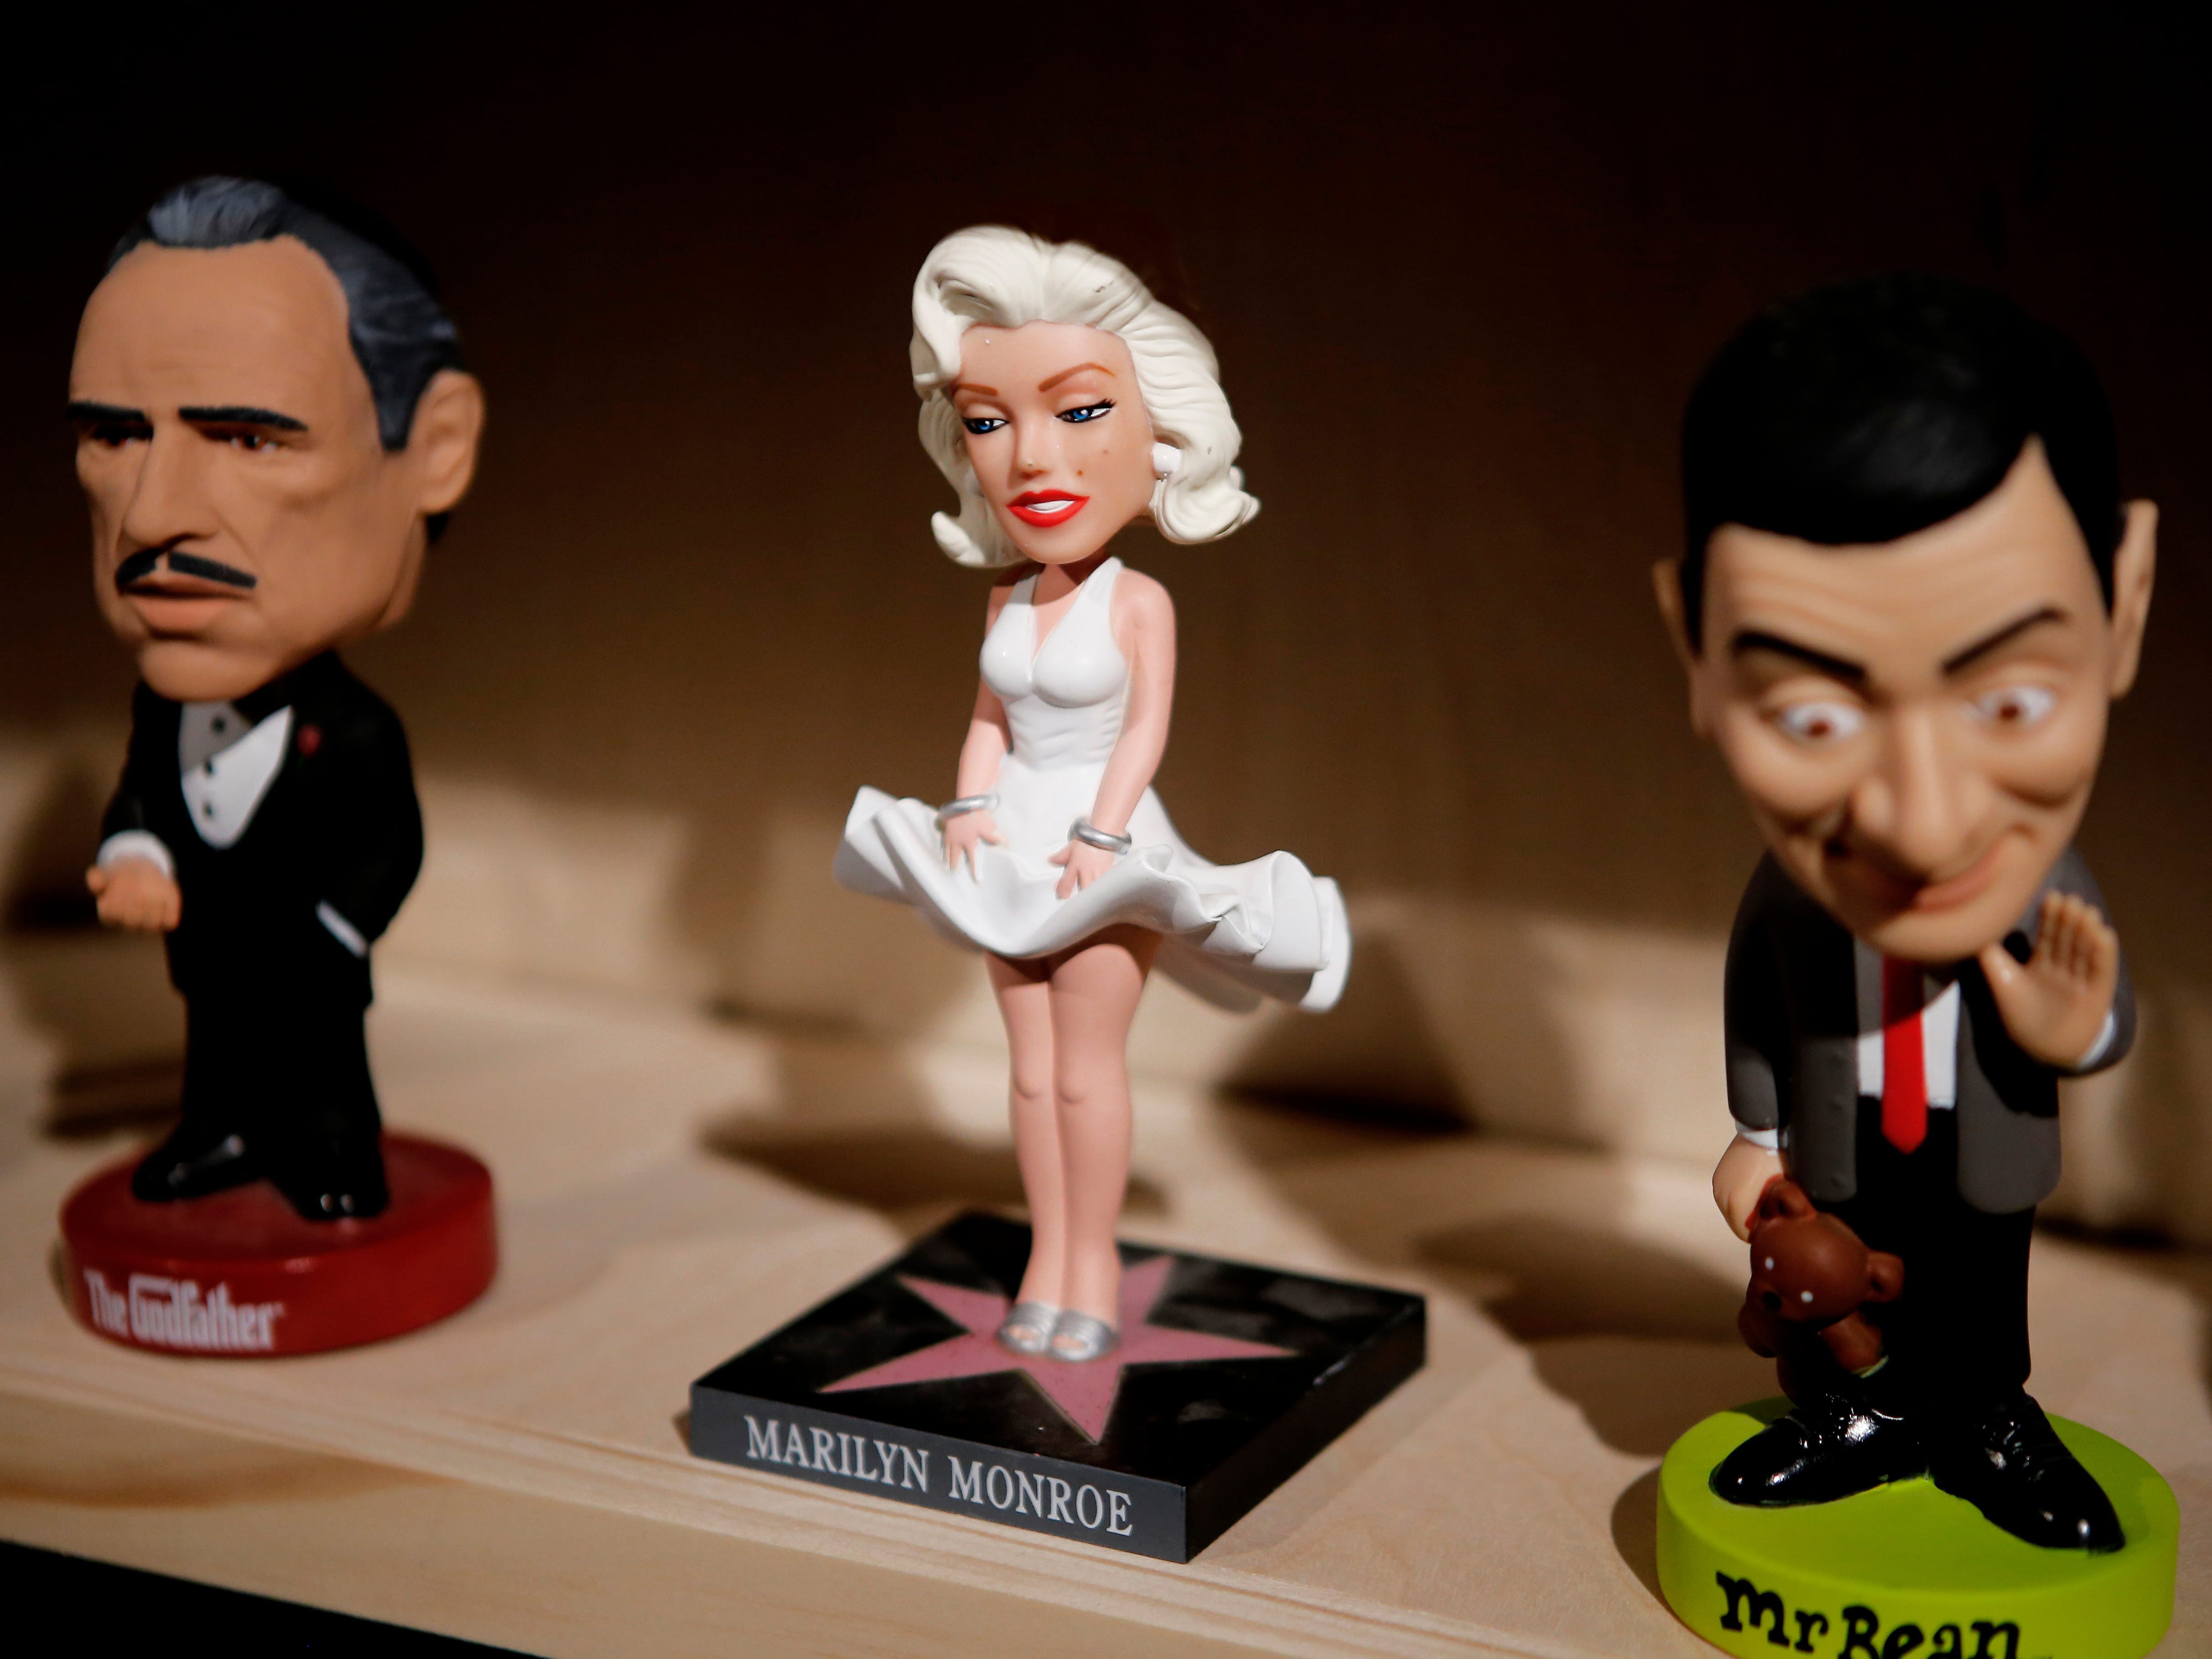 The Godfather, Marilyn Monroe and Mr. Bean